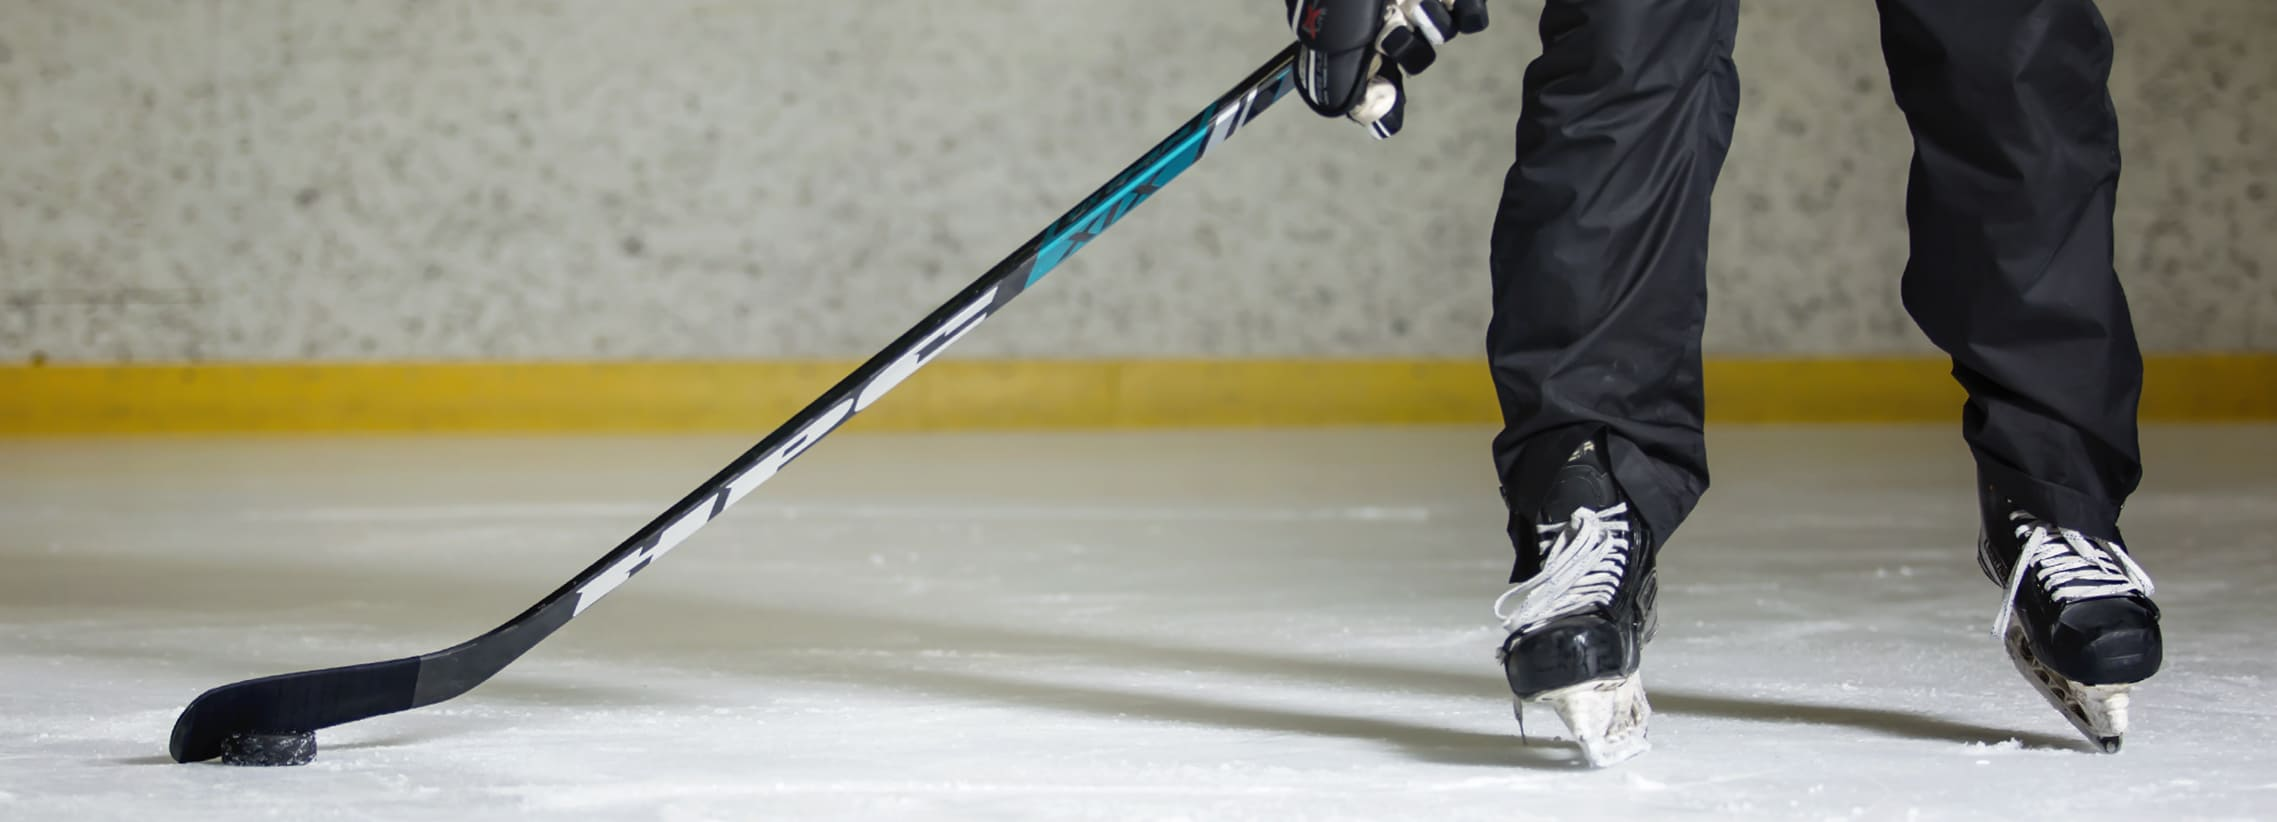 The HPC X1X hockey stick is one the best hockey sticks ever made.